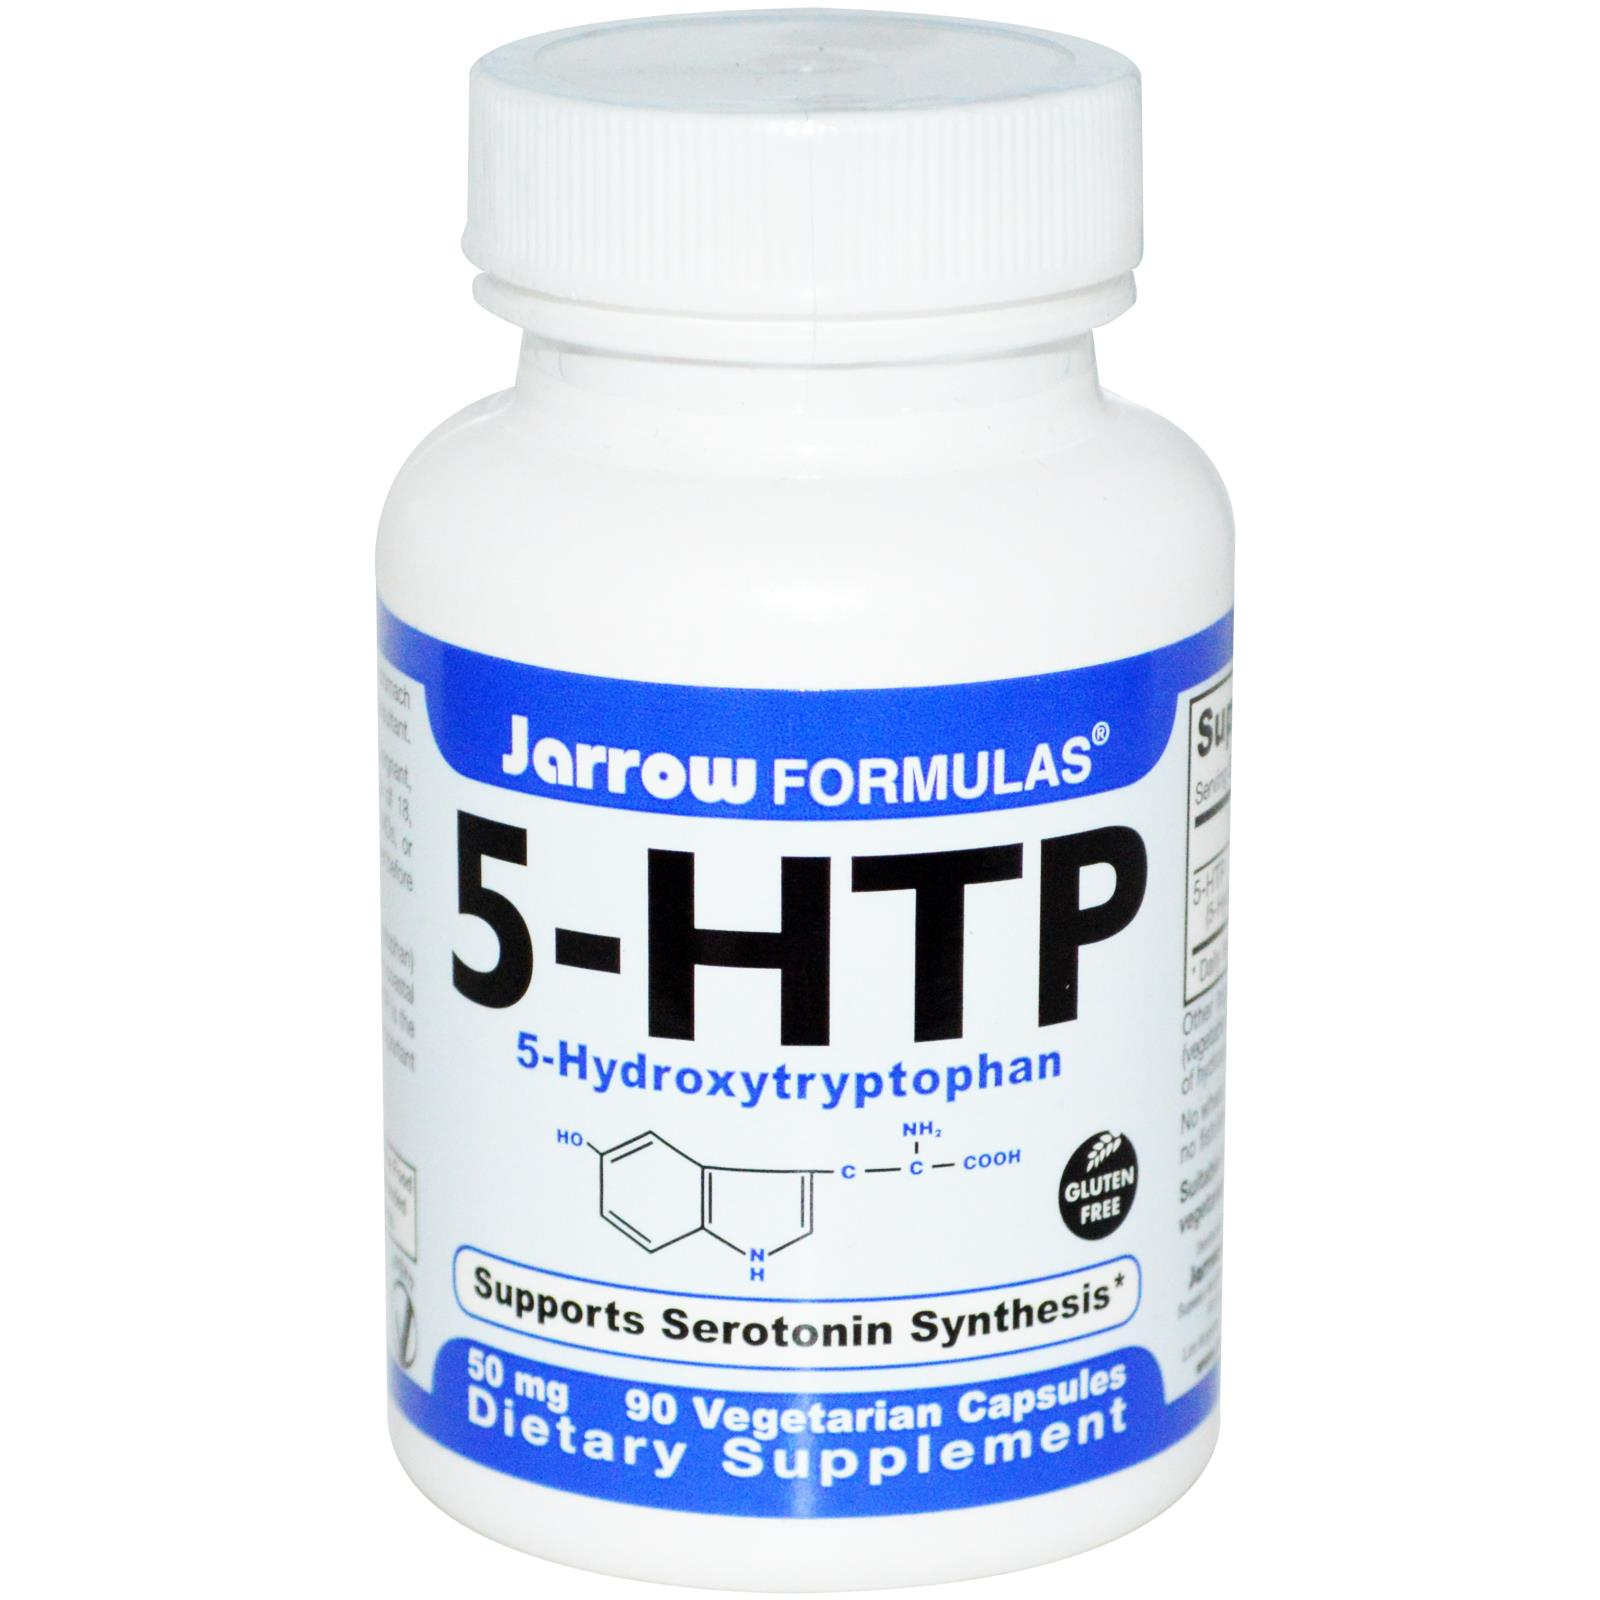 5-hydroxytryptophan supplement